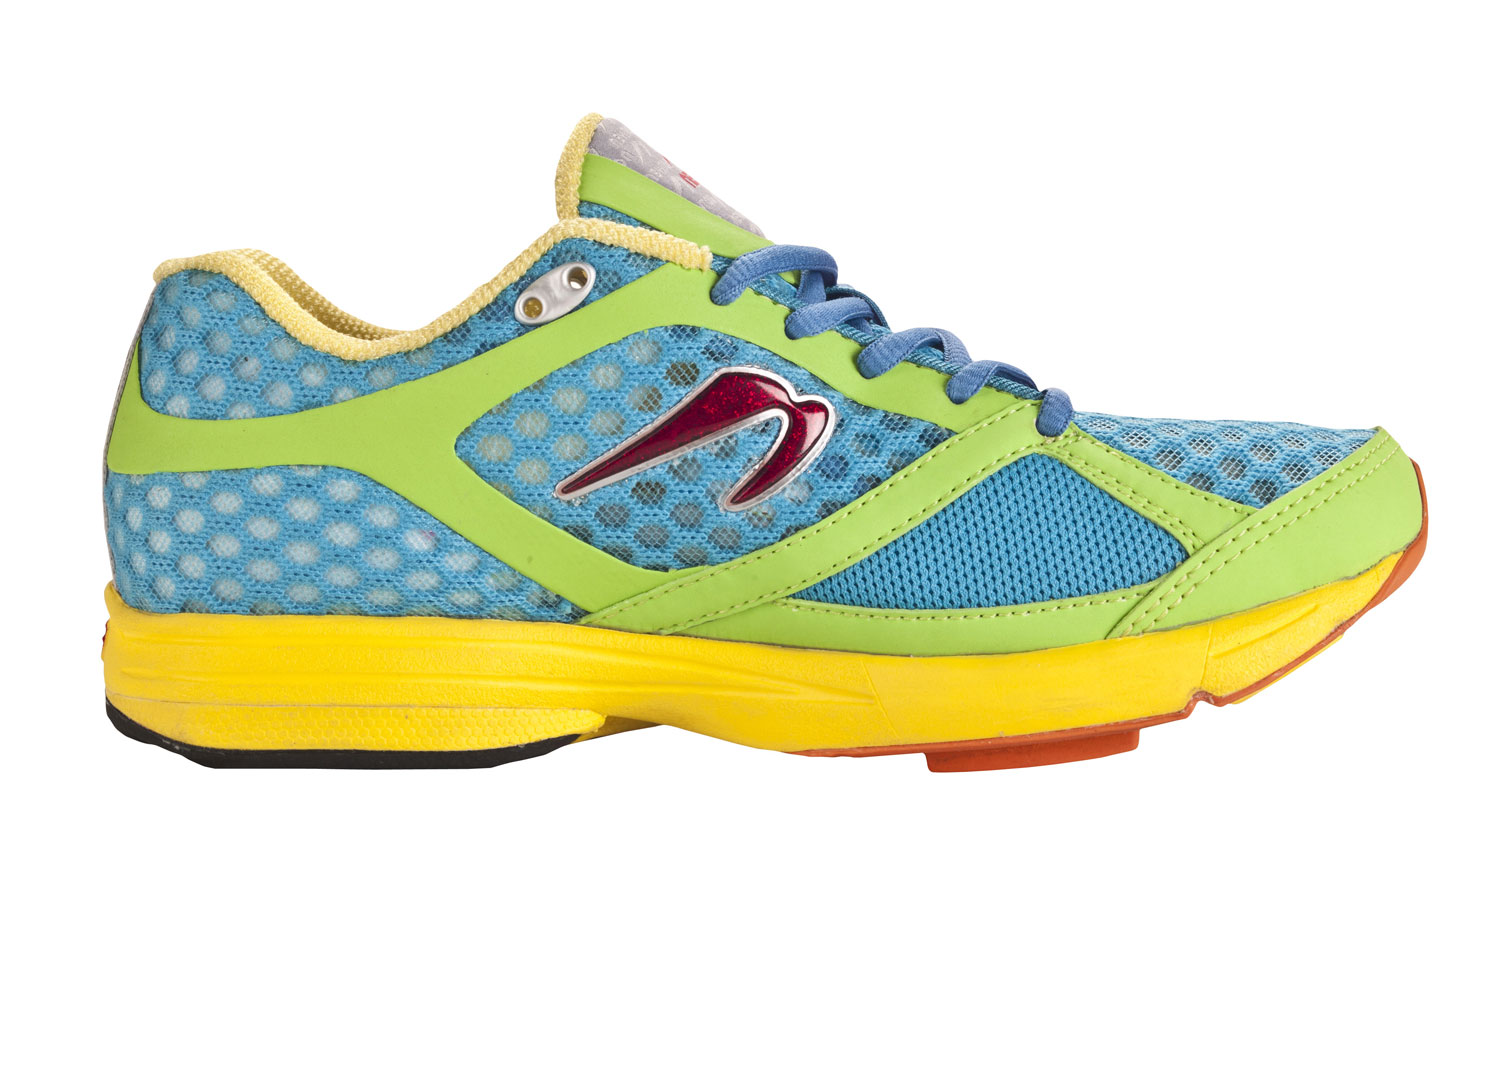 A pair of Newton Gravity running shoes